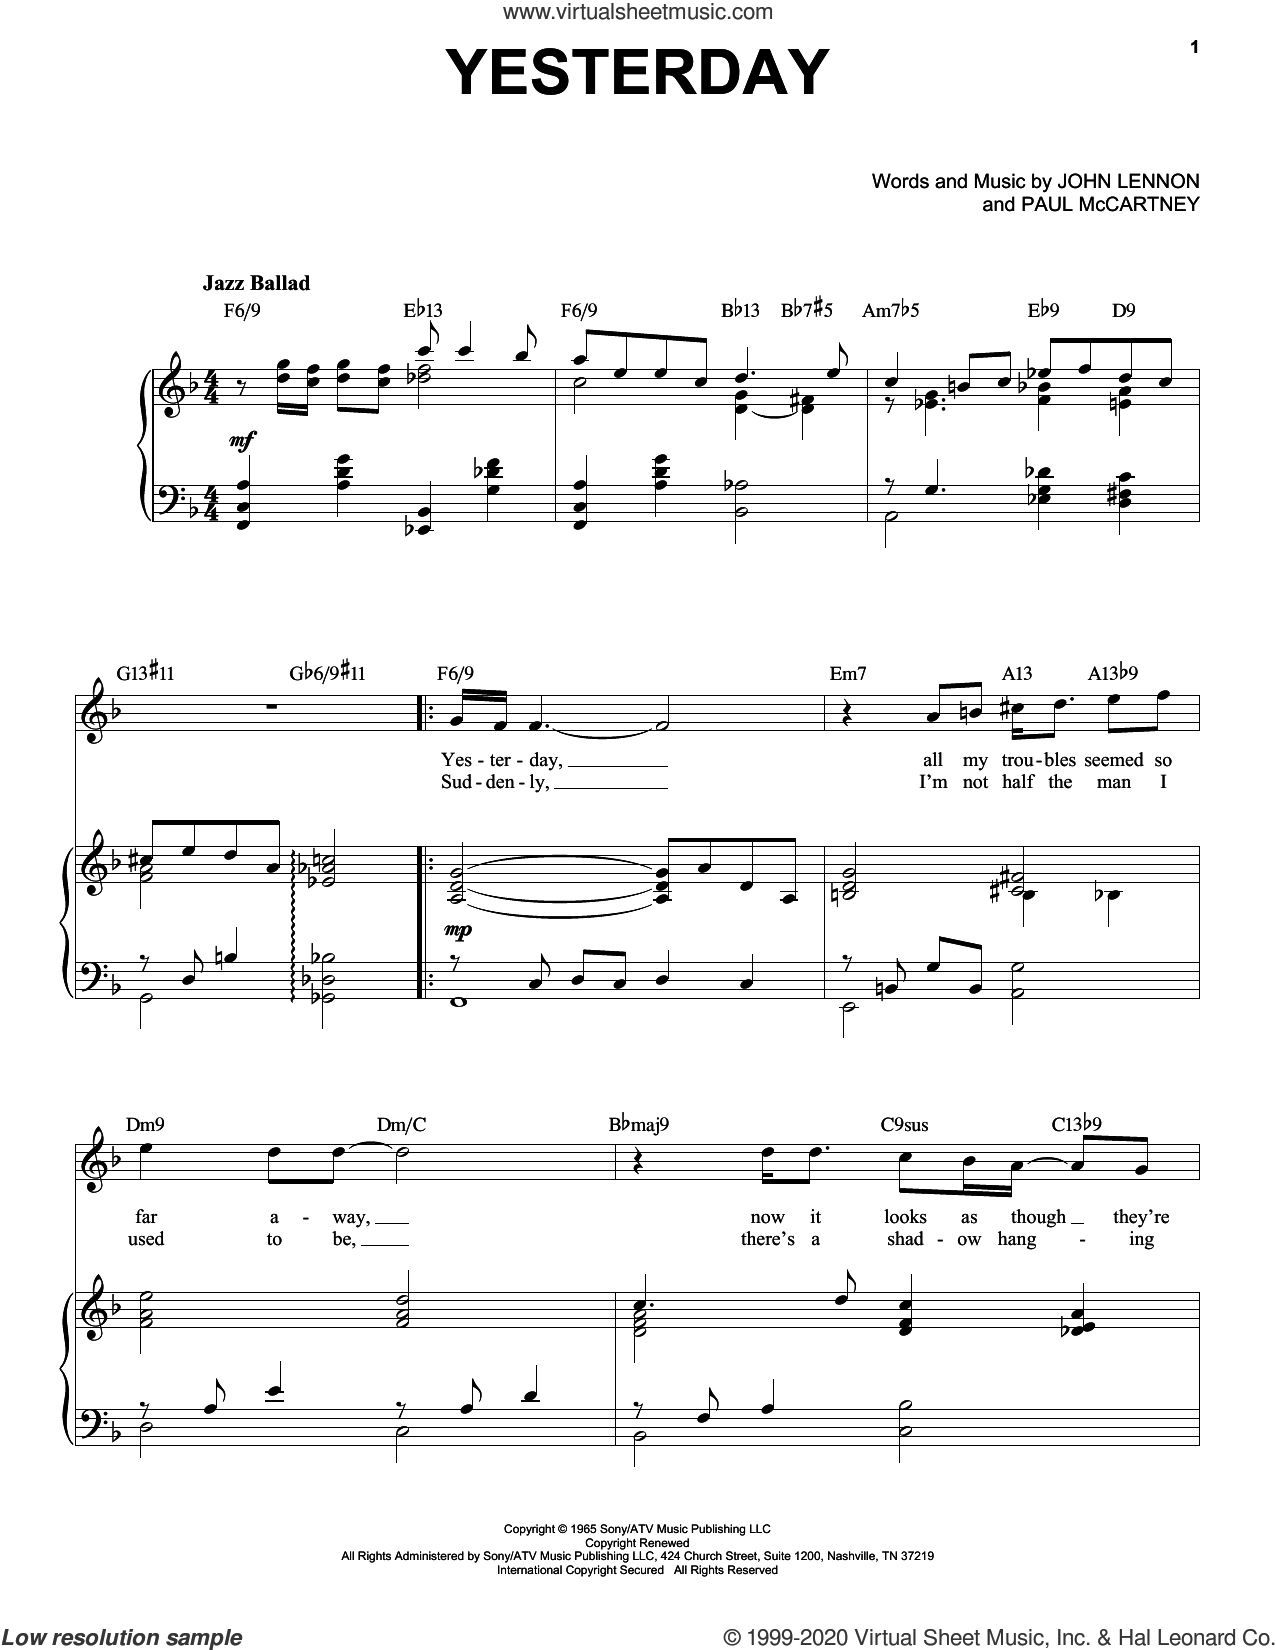 Yesterday [Jazz version] (arr. Brent Edstrom) sheet music for voice and piano (High Voice) by The Beatles, John Lennon and Paul McCartney, intermediate skill level